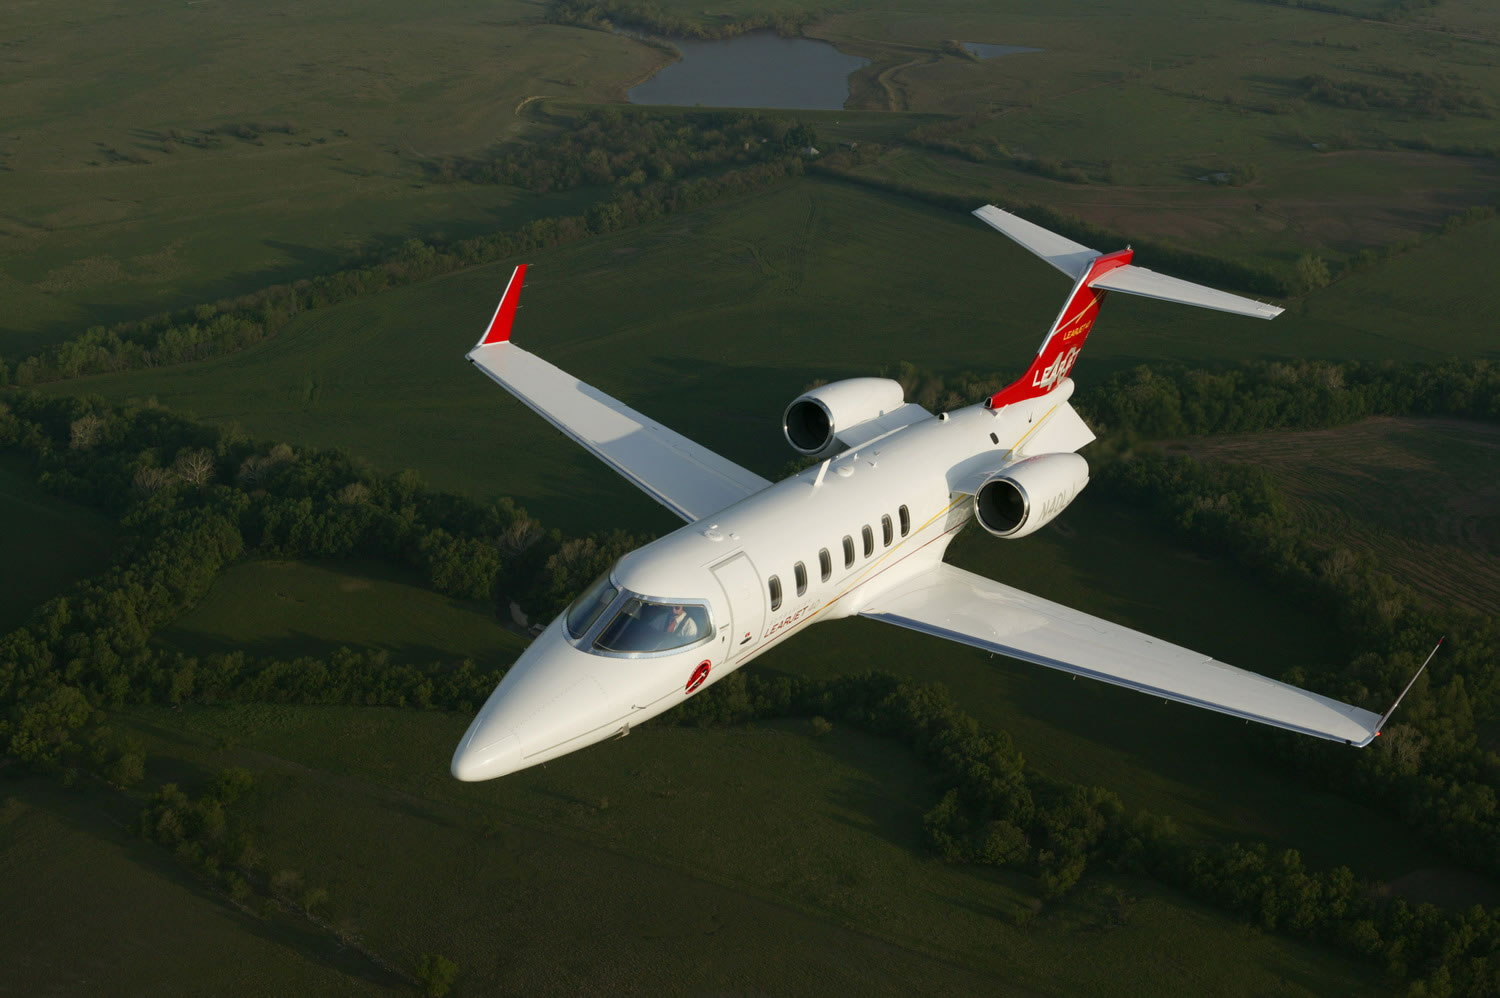 luxury corporate helicopters with Learjet 4040xr on Private Jet Flights Helicopters further Learjet 4040xr further F1 Paddock Club furthermore Bell 206 L4 Private Helicopter Number One Bell Helicopter also Top 10 Private Jets Billionaires Unlashed.